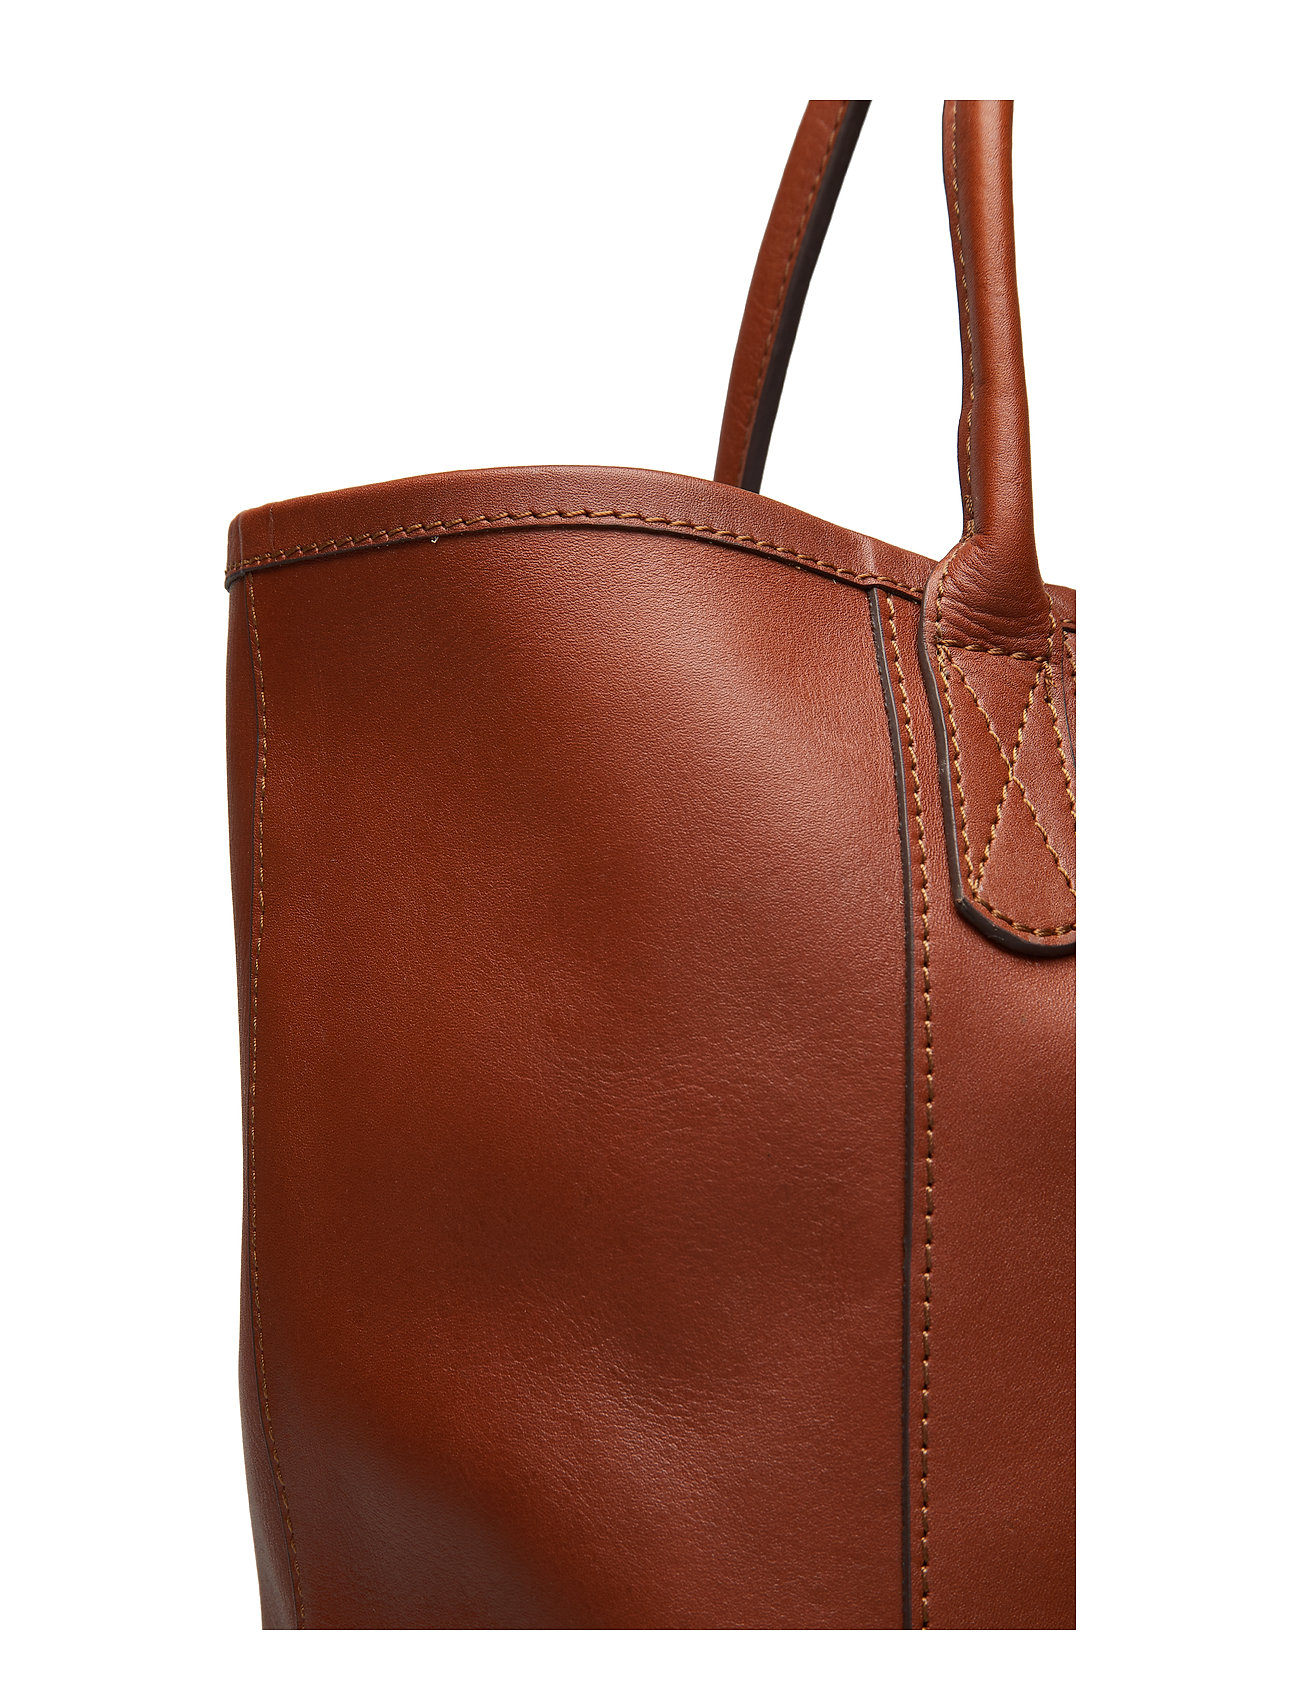 Tote Baglight CognacLexington Clothing Mayflower Leather hdCBsQxrto